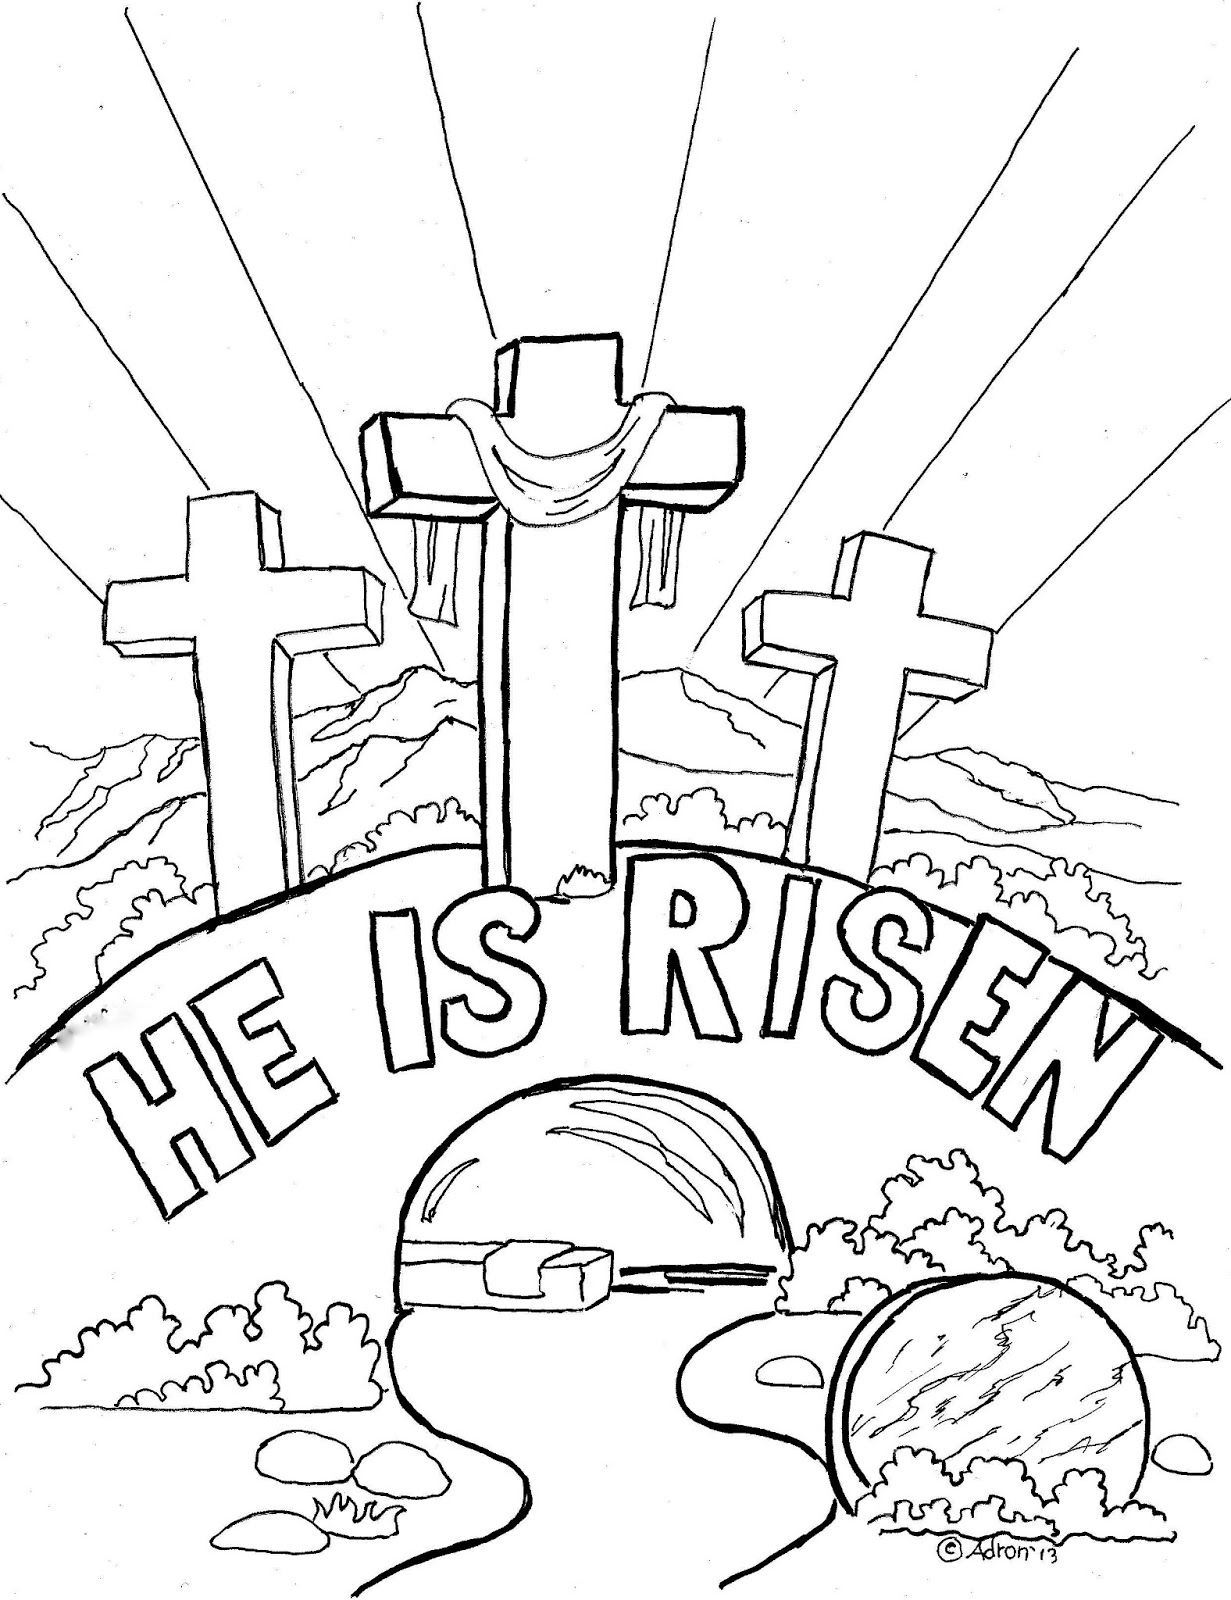 church easter coloring pages easter coloring pages for kids free easter coloring pages he is risen coloring pages free and fresh coloring pictures - Resurrection Coloring Pages Print